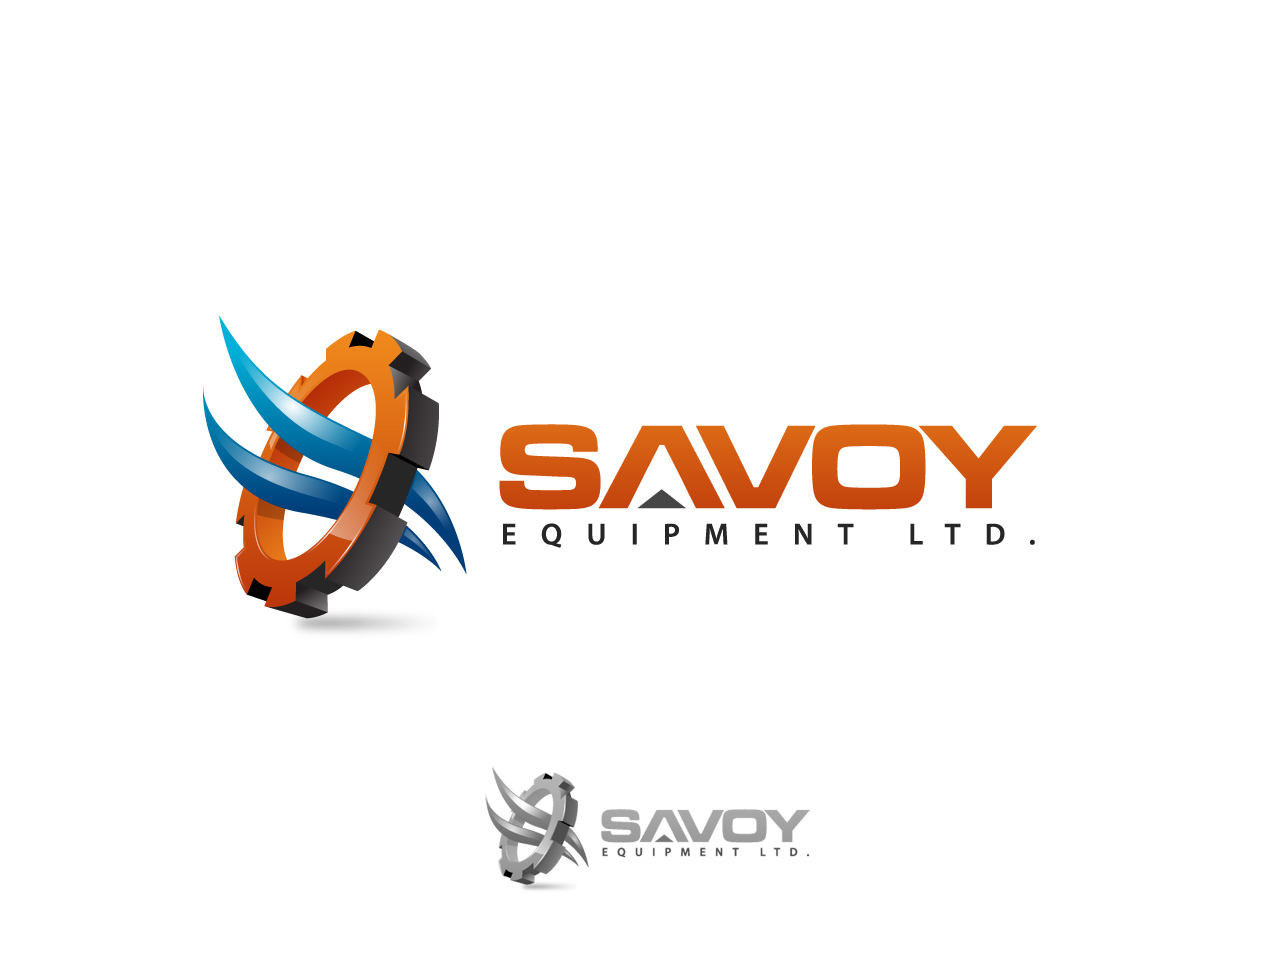 Logo Design by jpbituin - Entry No. 150 in the Logo Design Contest Inspiring Logo Design for Savoy Equipment Ltd..